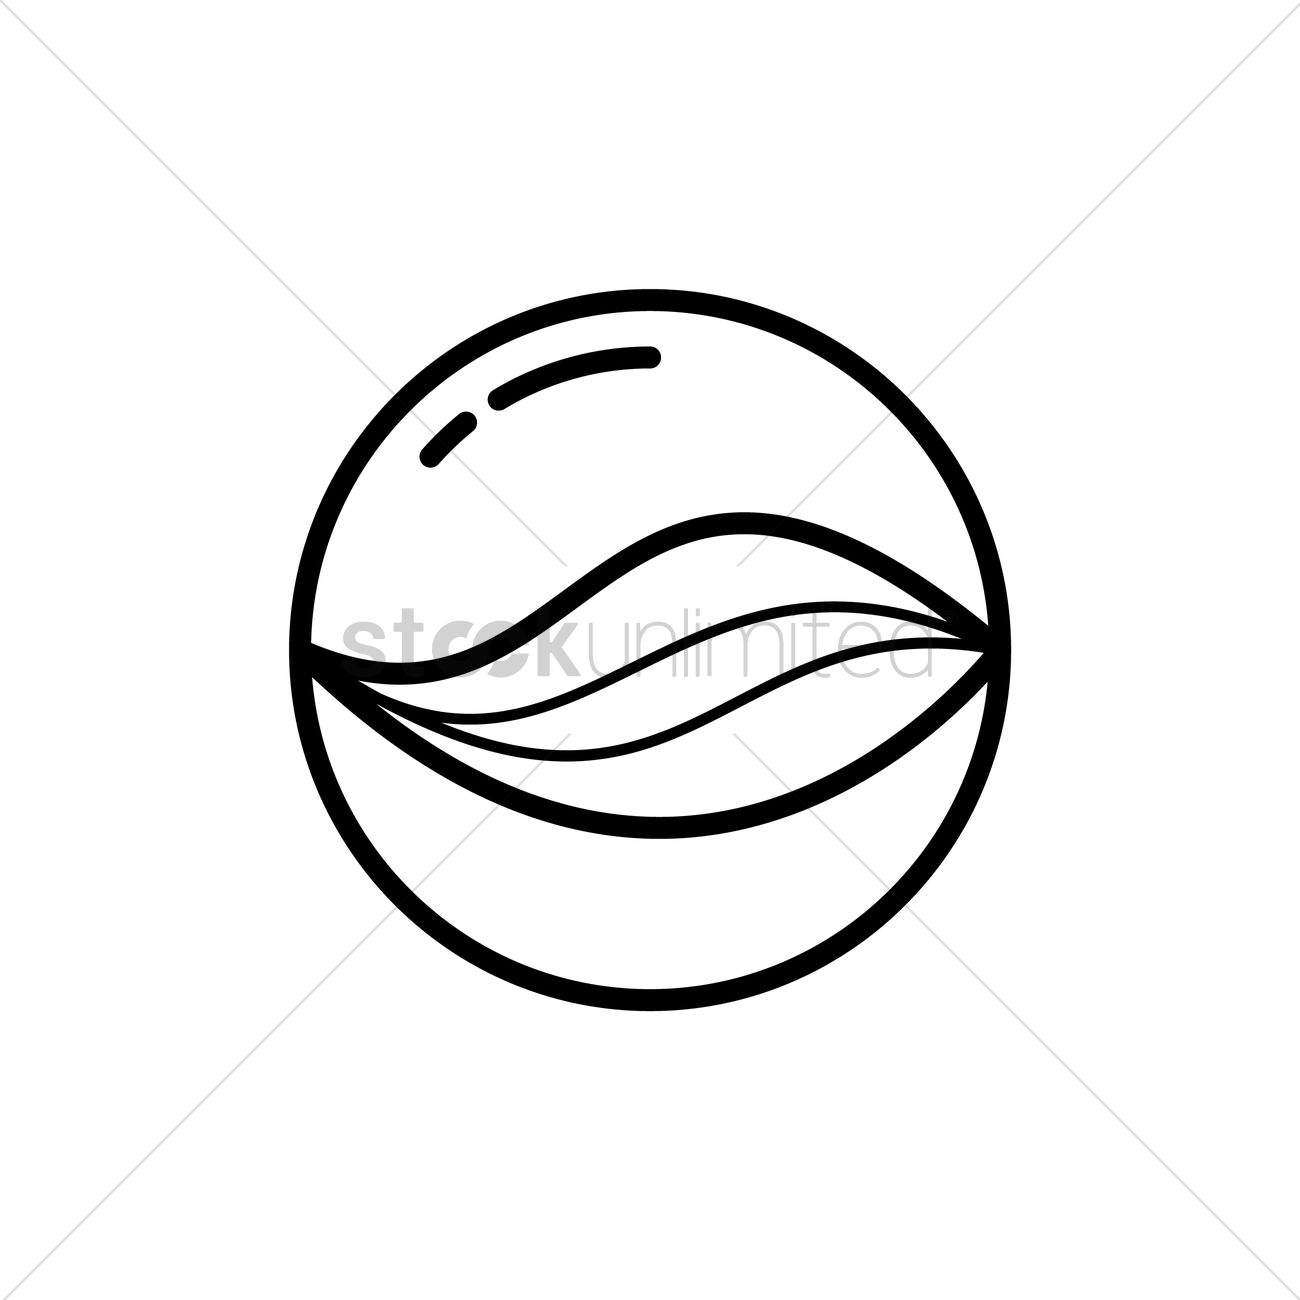 Marble ball Vector Image - 1527229 | StockUnlimited